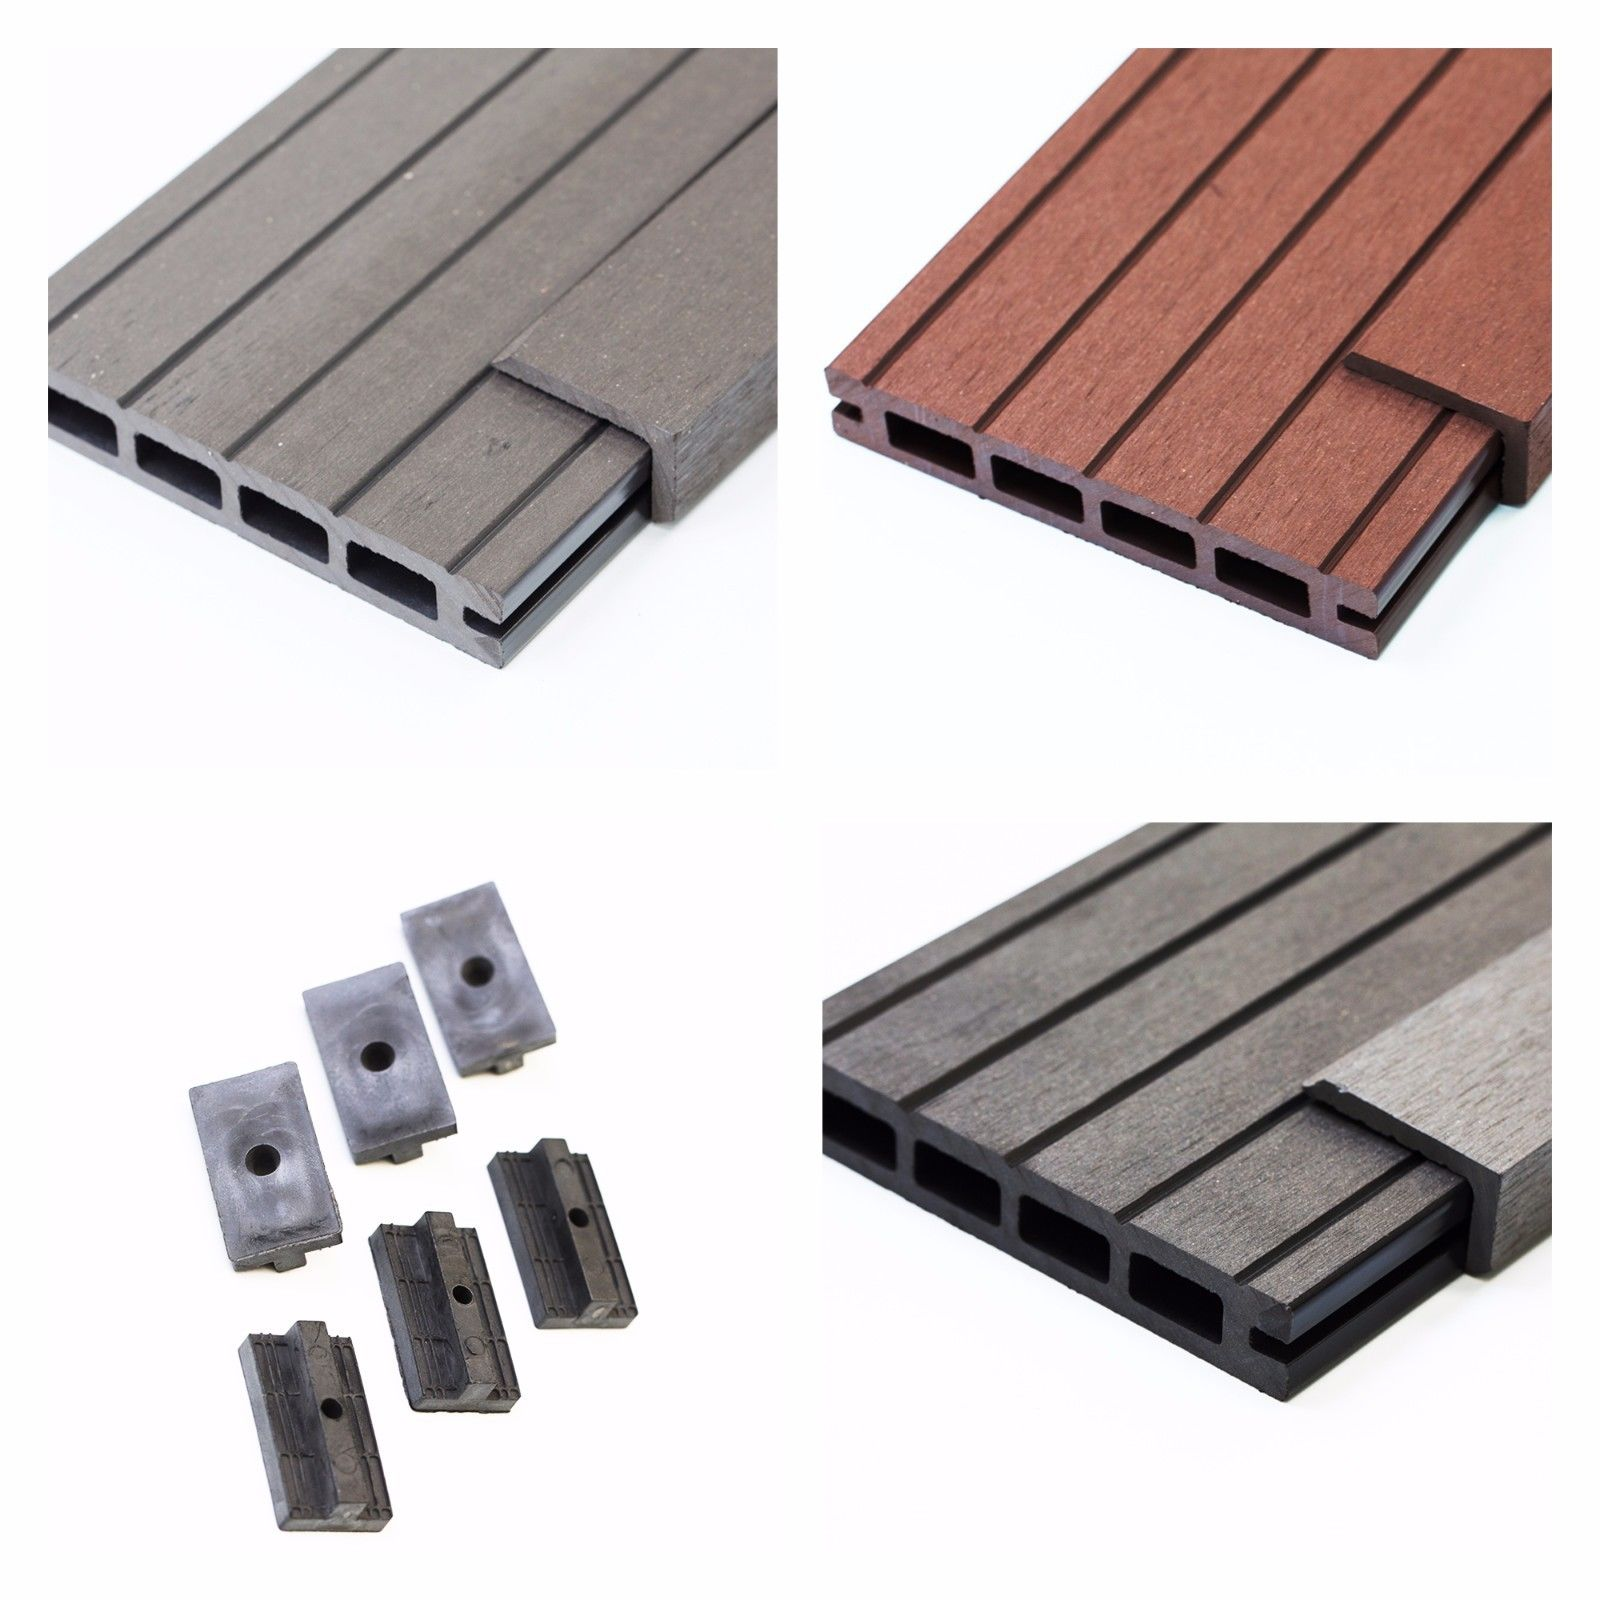 15 Sq. Metres of Wood Composite Decking Inc Boards, Edge & Repairing Packs